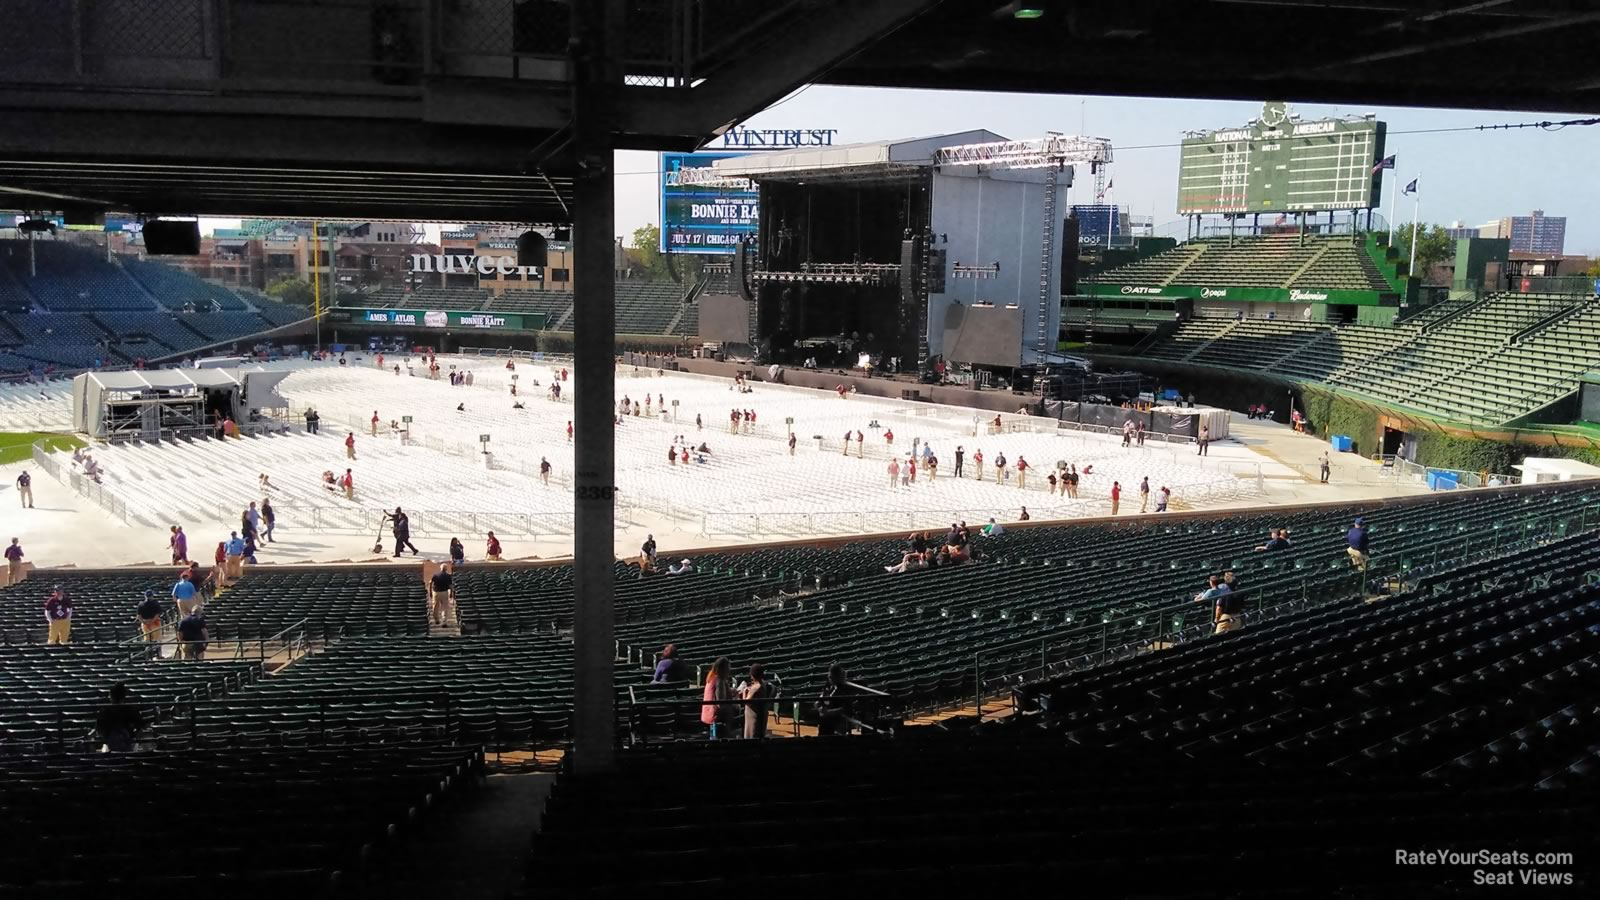 Wrigley Field Section 236 Concert Seating - RateYourSeats.com